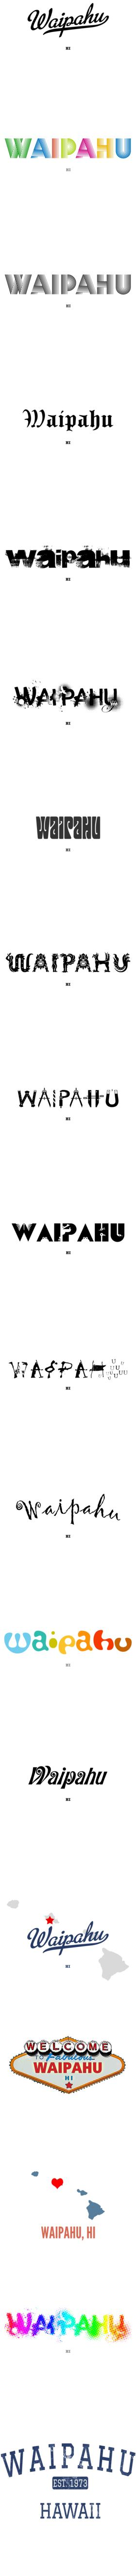 Waipahu Hi T Shirt Map Hometown Souvenir By Greatcitees Com